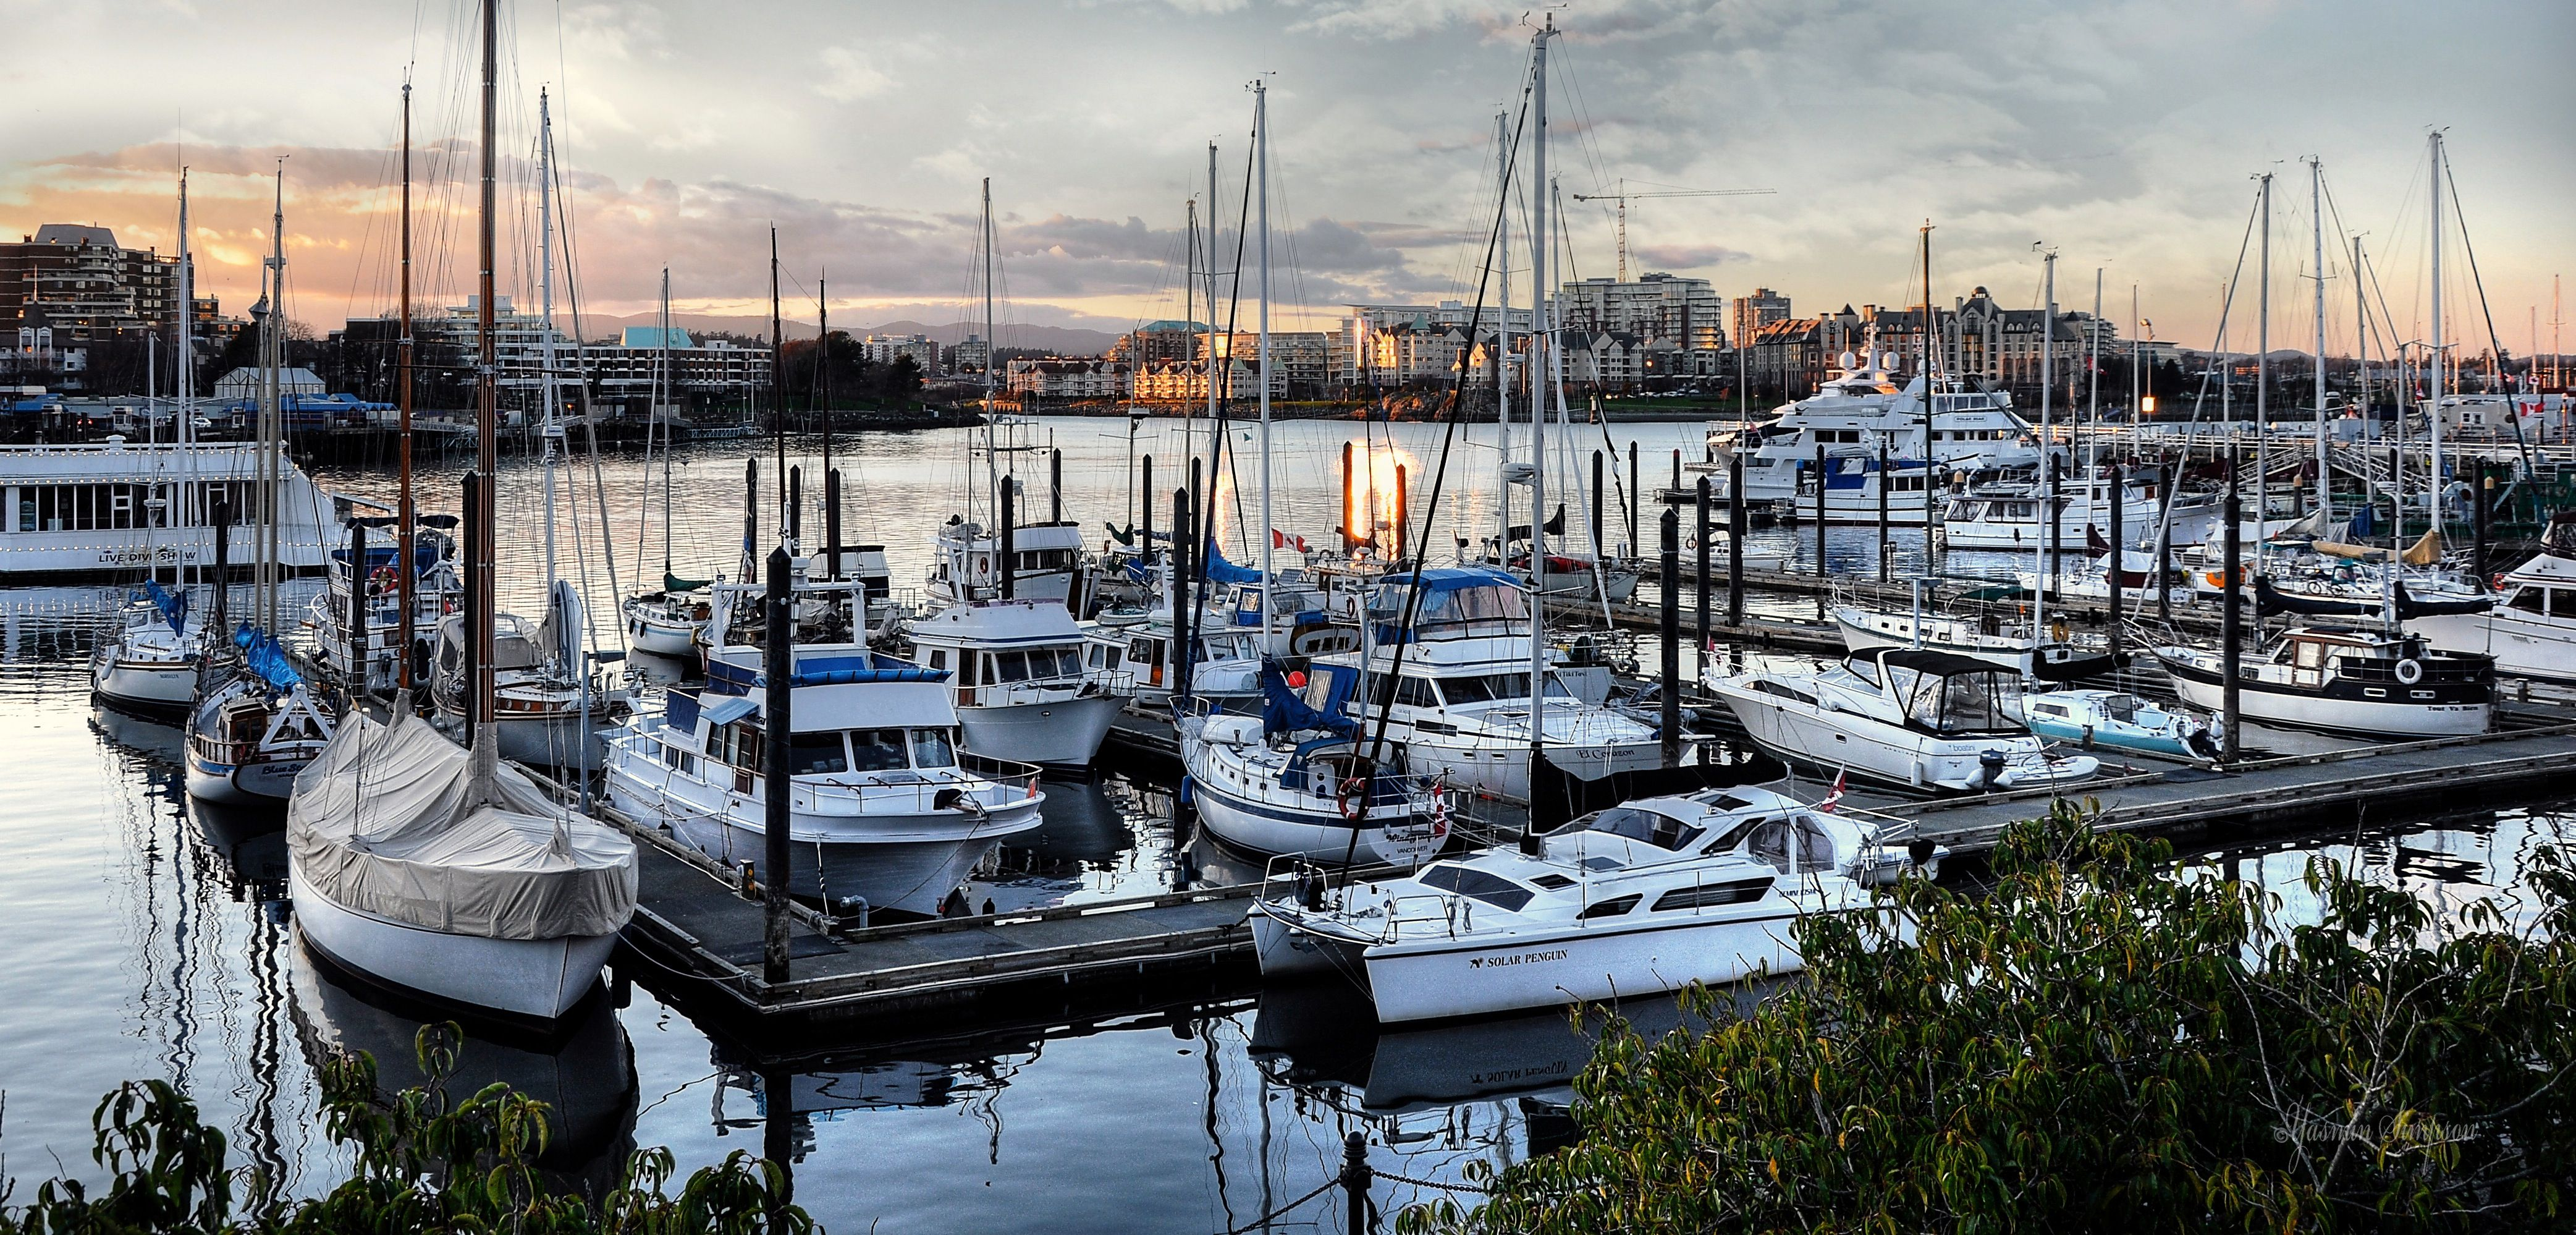 Fisherman S Wharf Is Located Just Around The Corner From Victoria S Inner Harbour Downtown Victoria B C Fishermen Work And So Fishermans Wharf Travel Boat